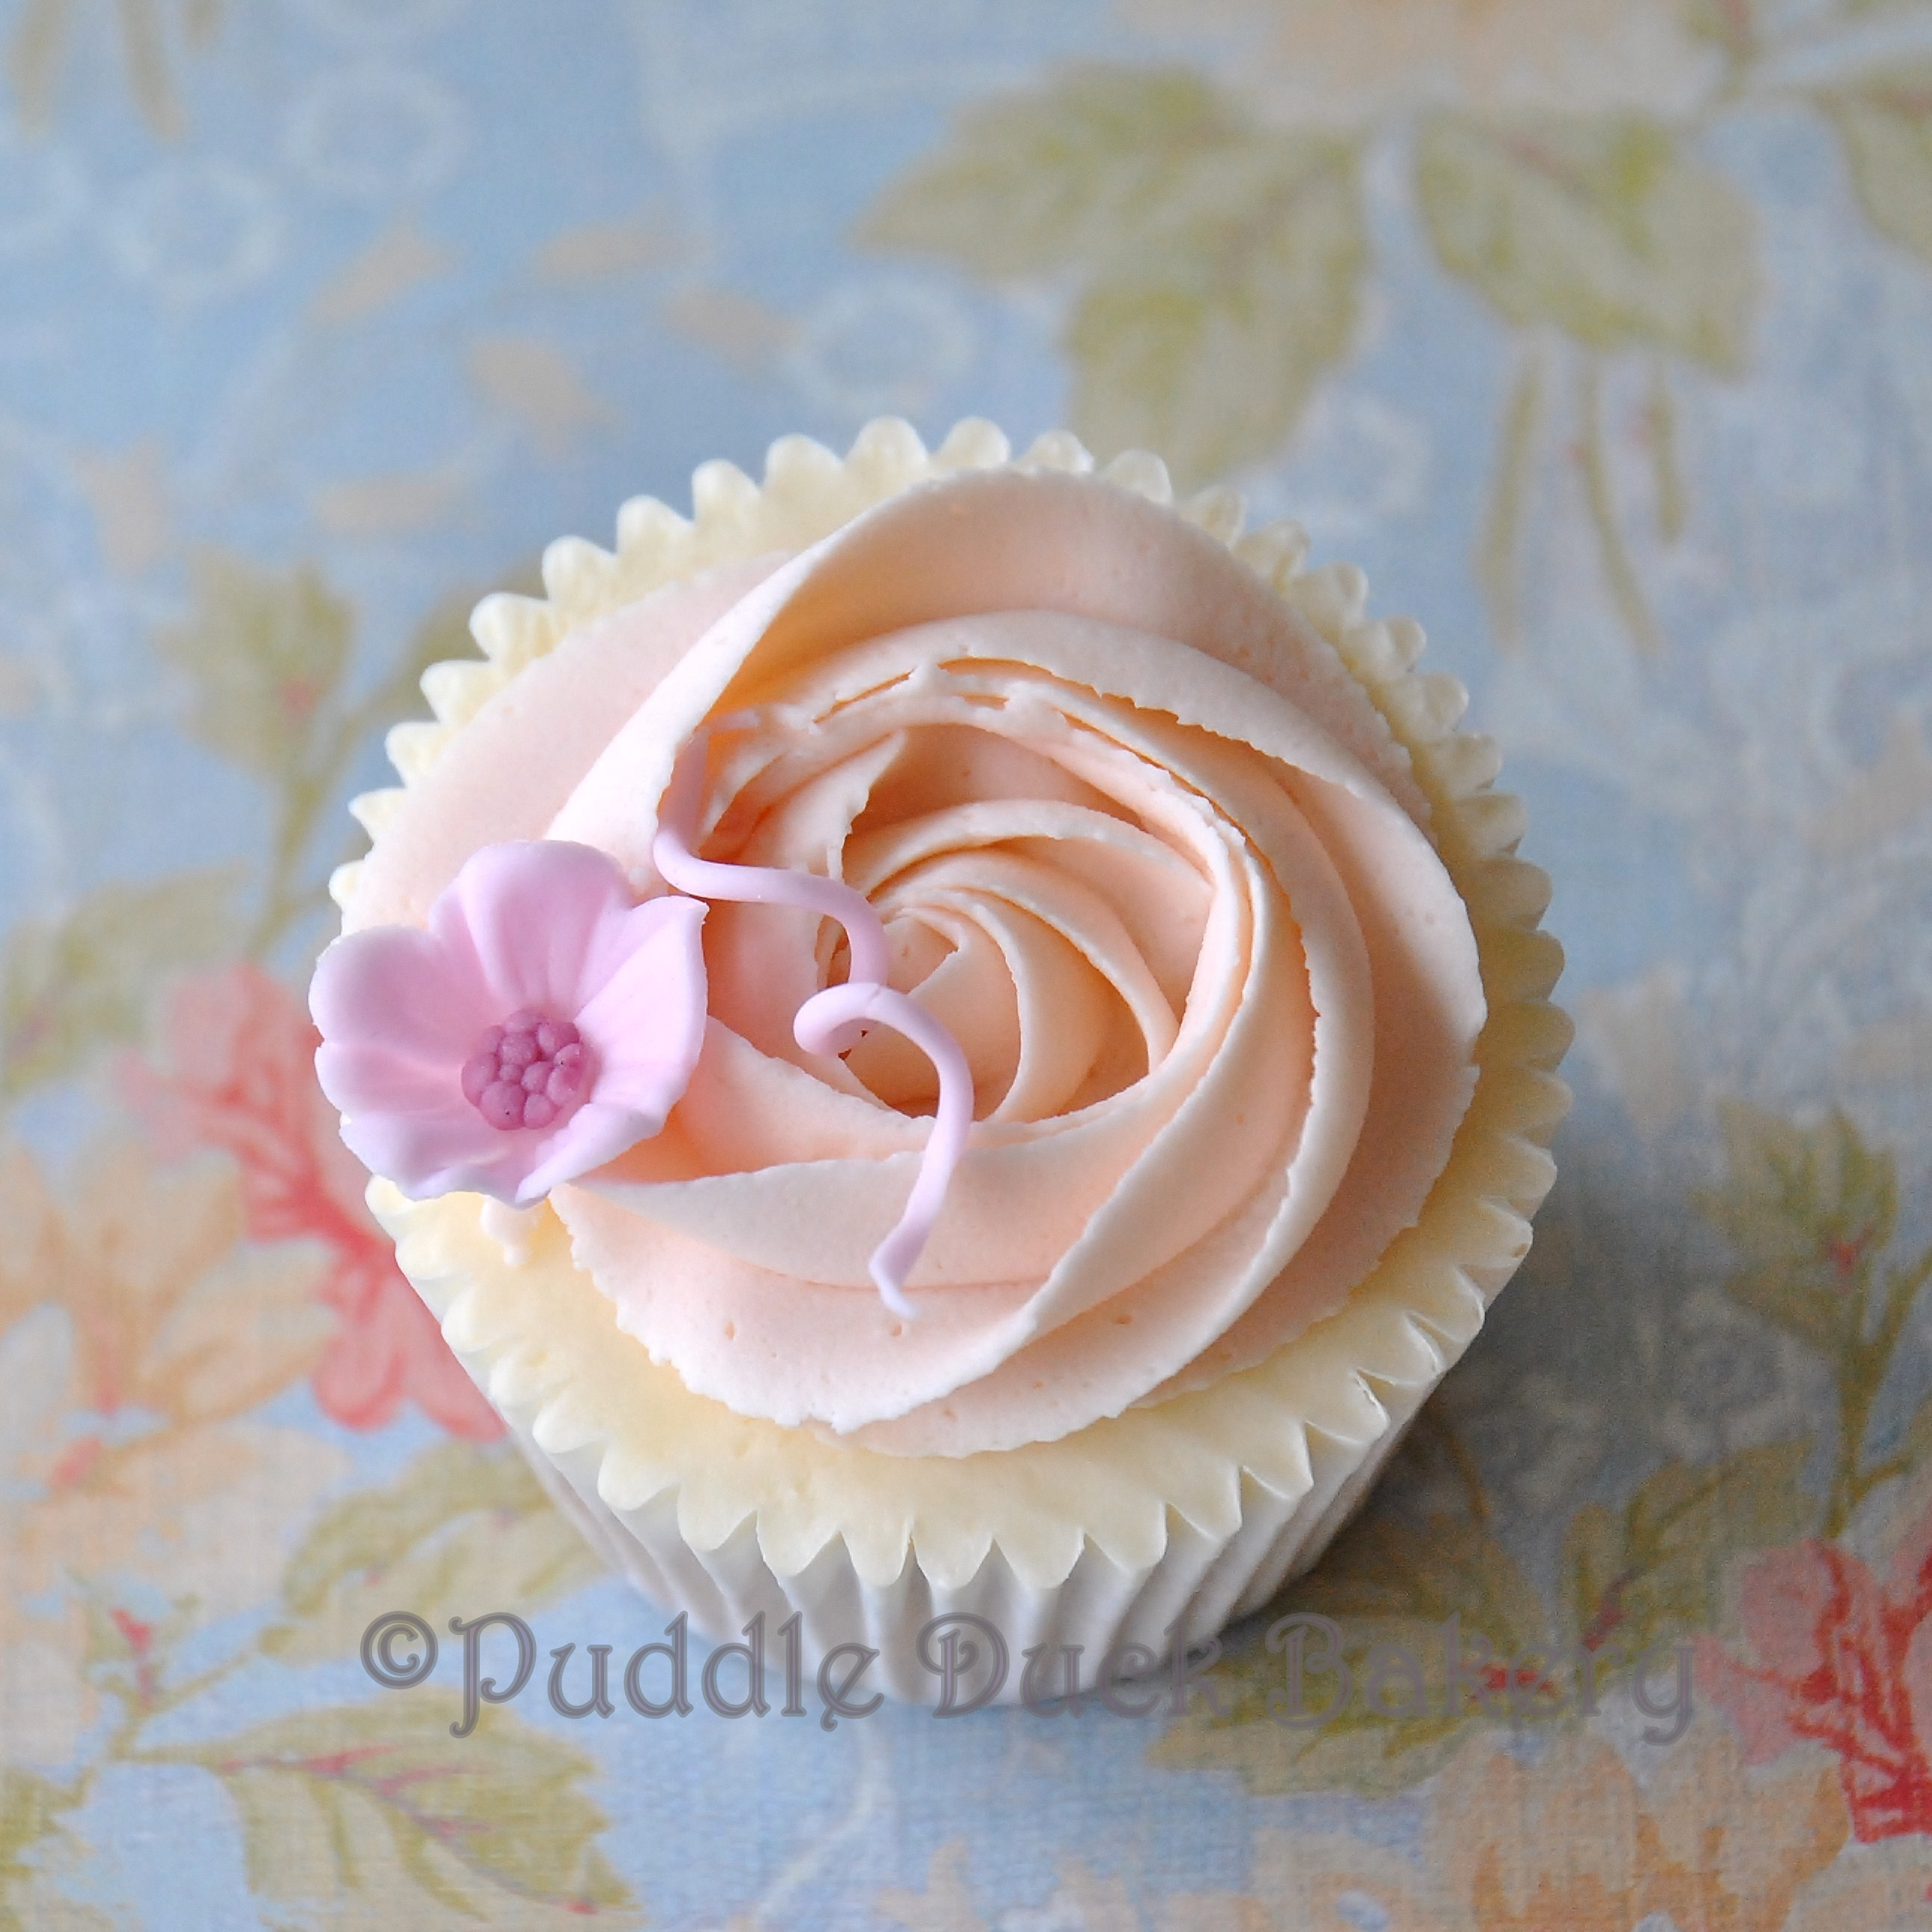 A swirl and a small flower on a cupcake